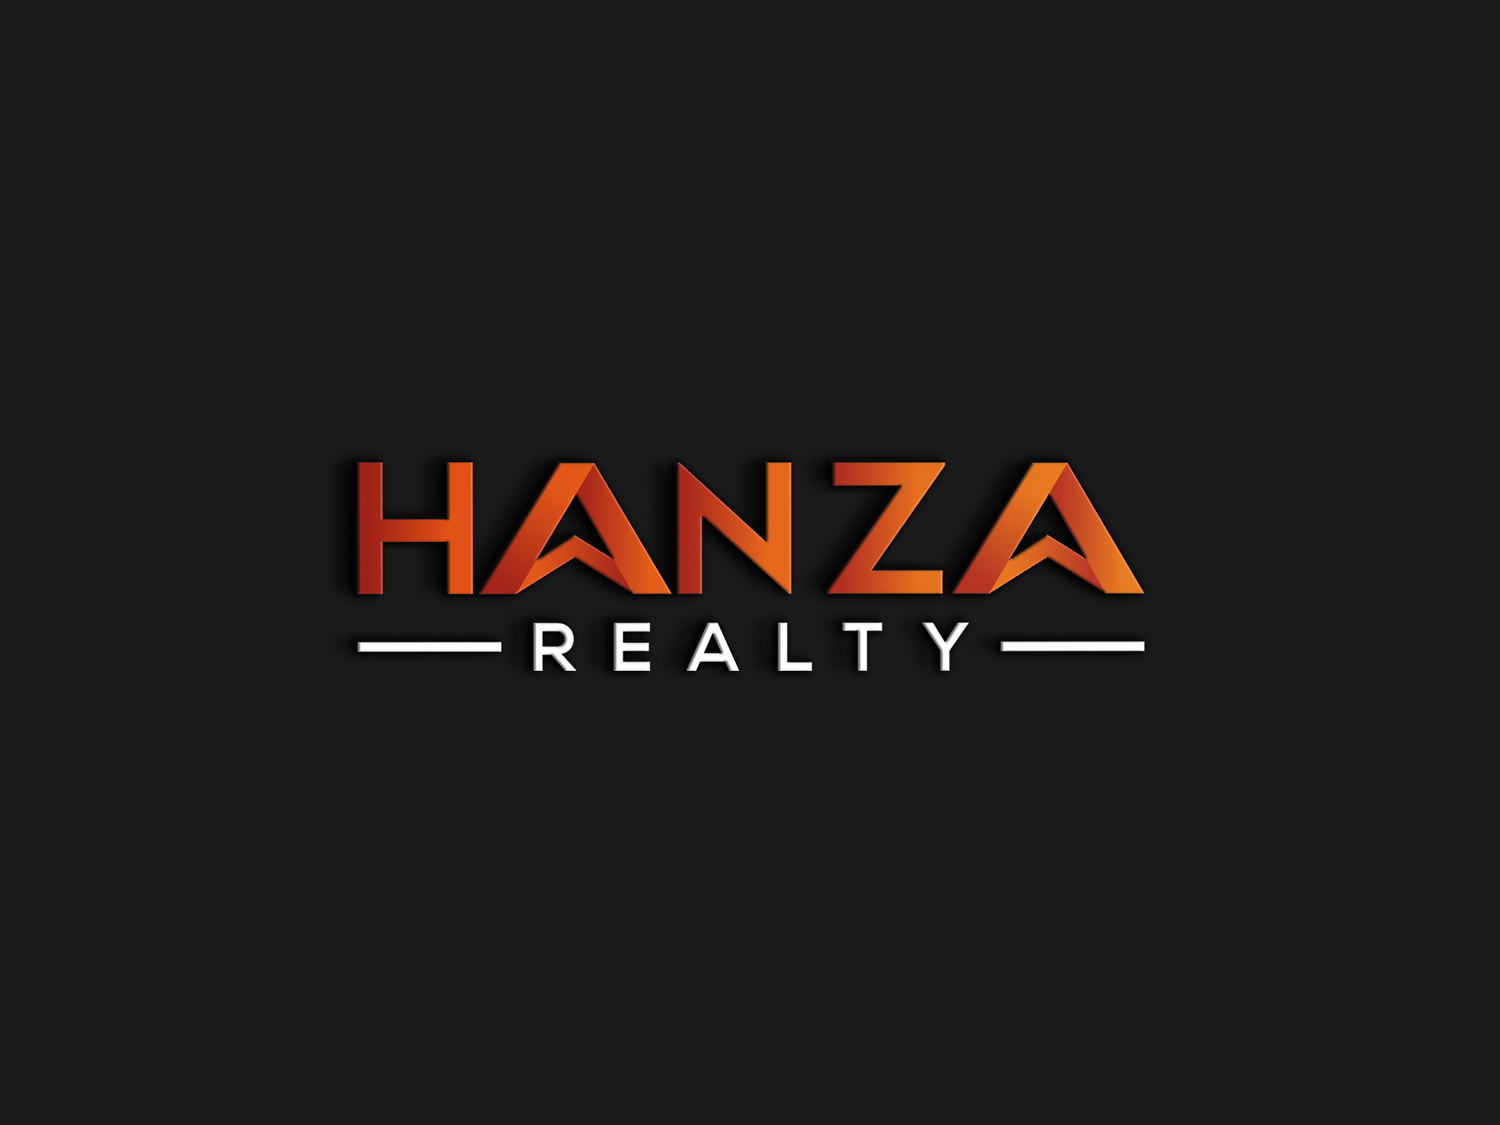 Logo Design by Md nayeem Khan - Entry No. 73 in the Logo Design Contest Logo Design for Hanza Realty.